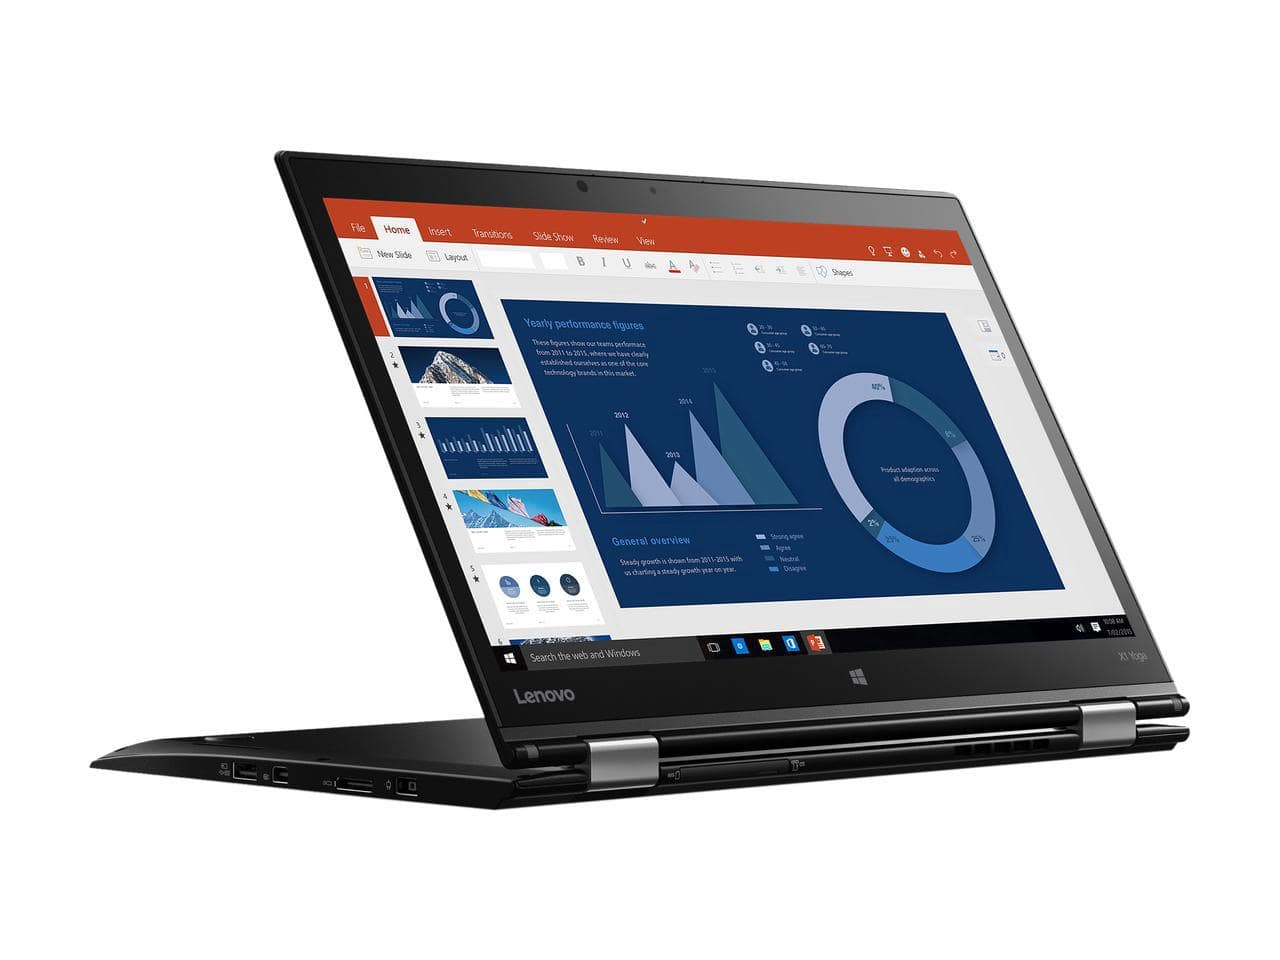 ThinkPad X1 Yoga (1st Gen) Intel Core i5 - 8gb DDR3L - 256GB SATA M.2 - $619 - New @LenovoOutlet